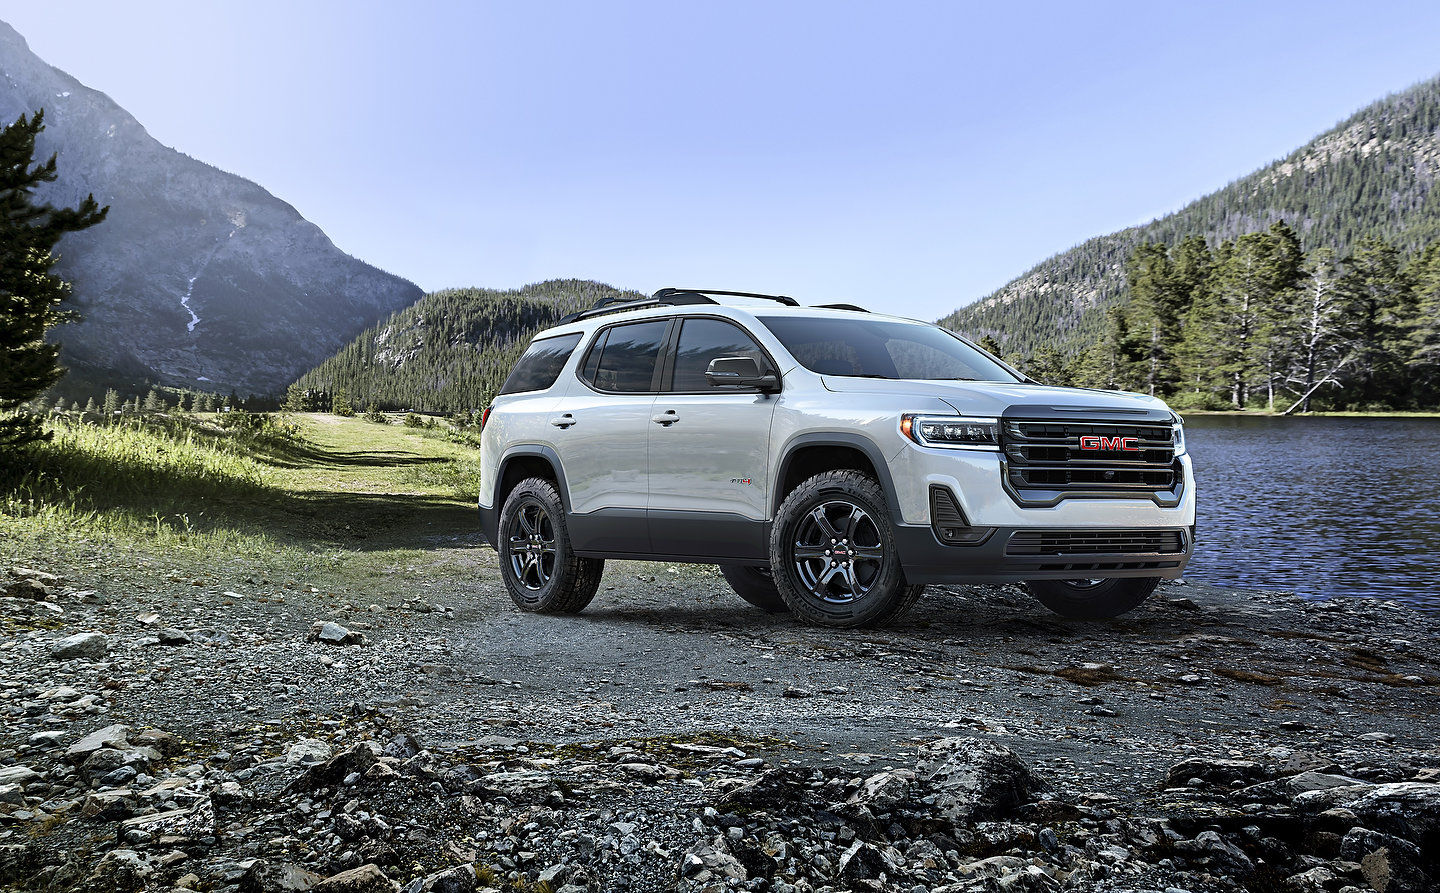 2020 GMC Acadia is here with a bold new look - Motor ...